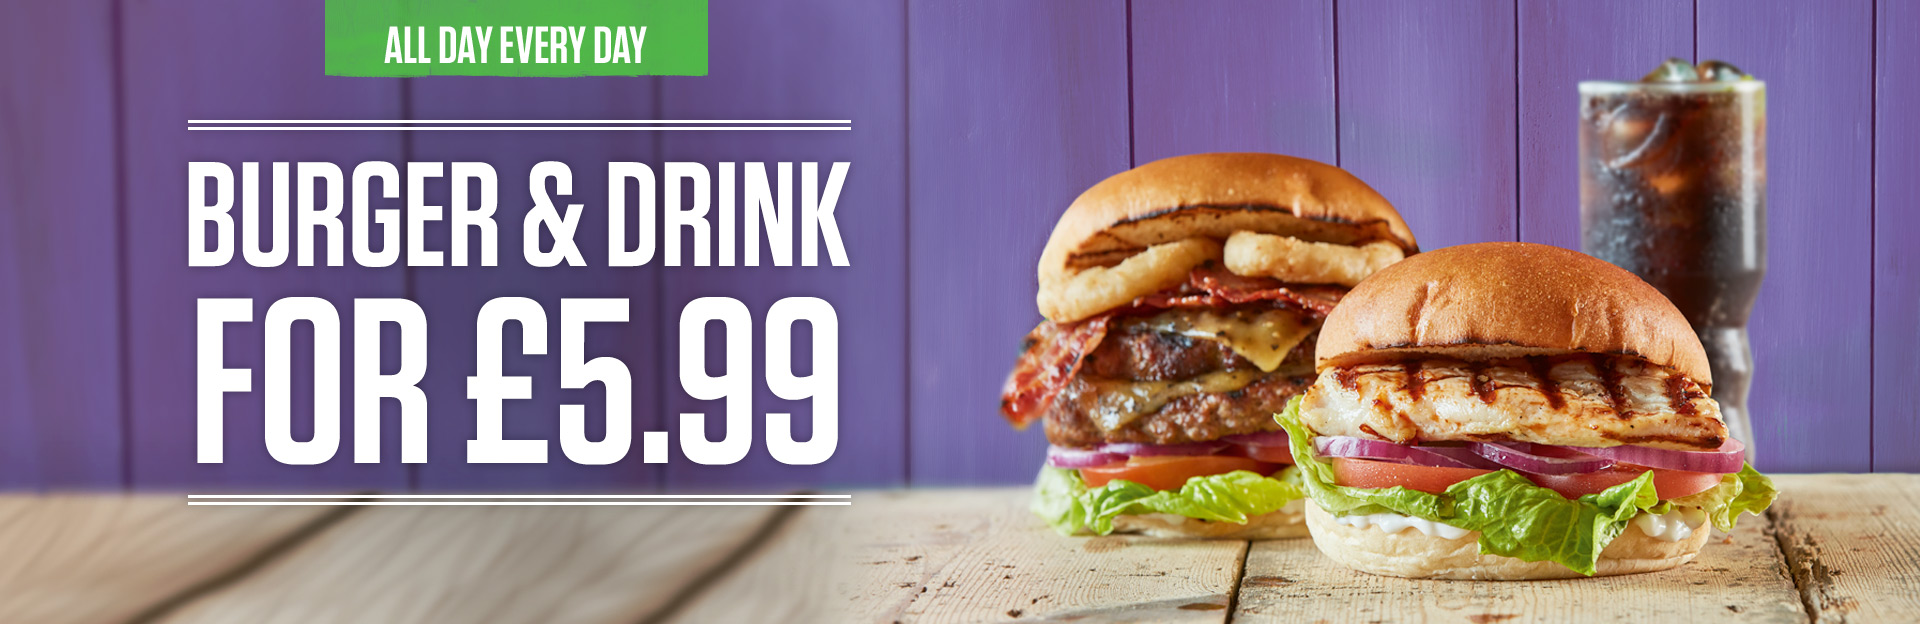 Burger and Drink Deal at Acorn